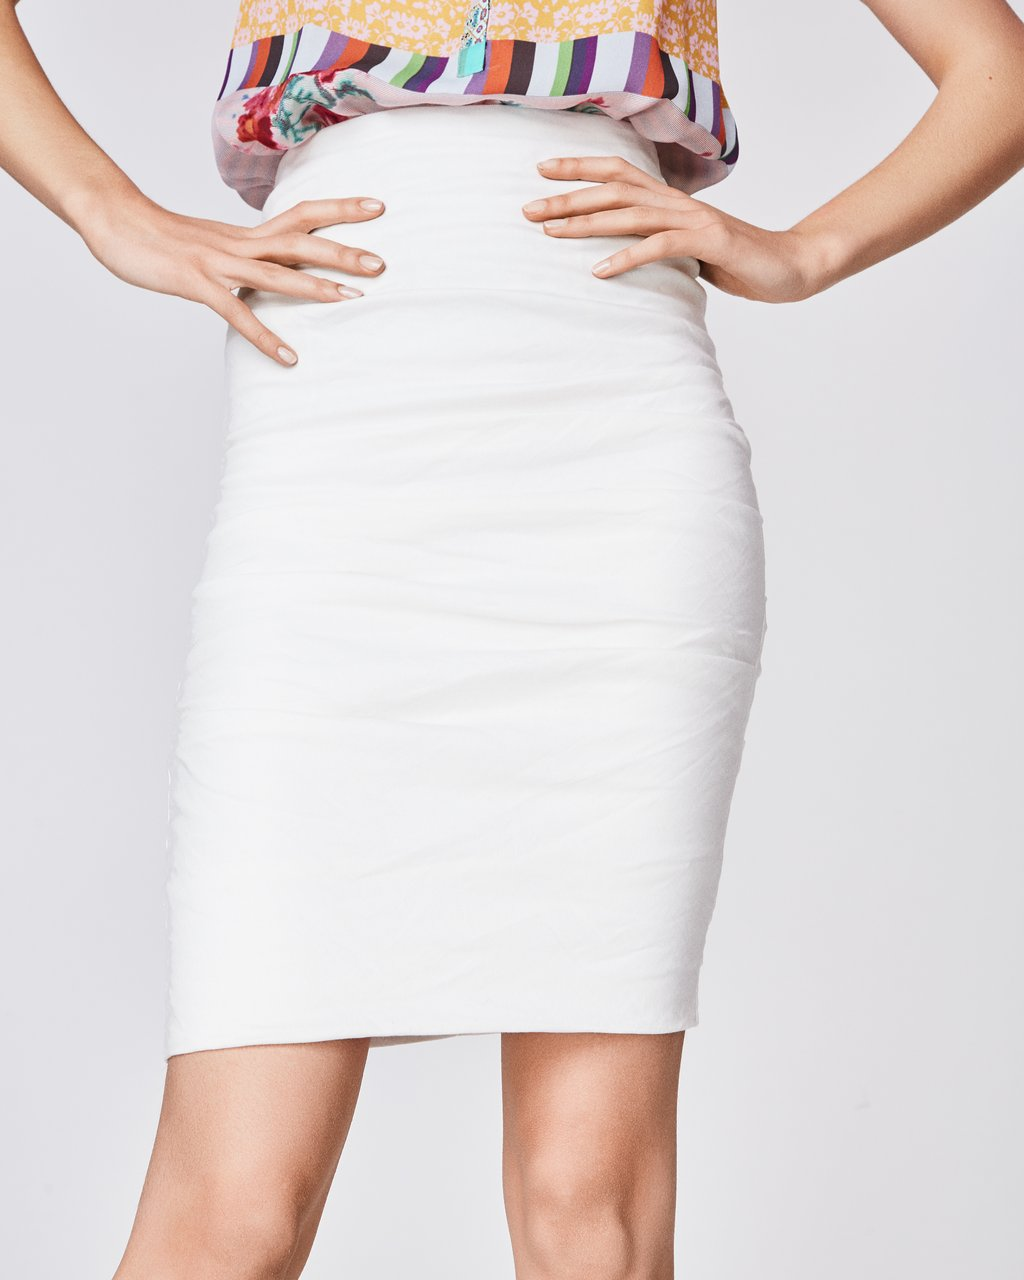 Sandy Skirt - This skirt is a MUST for your wardrobe. It is flattering on absolutely everyone. Wear it to a cocktail party or pair it with a tee for a casual day look.